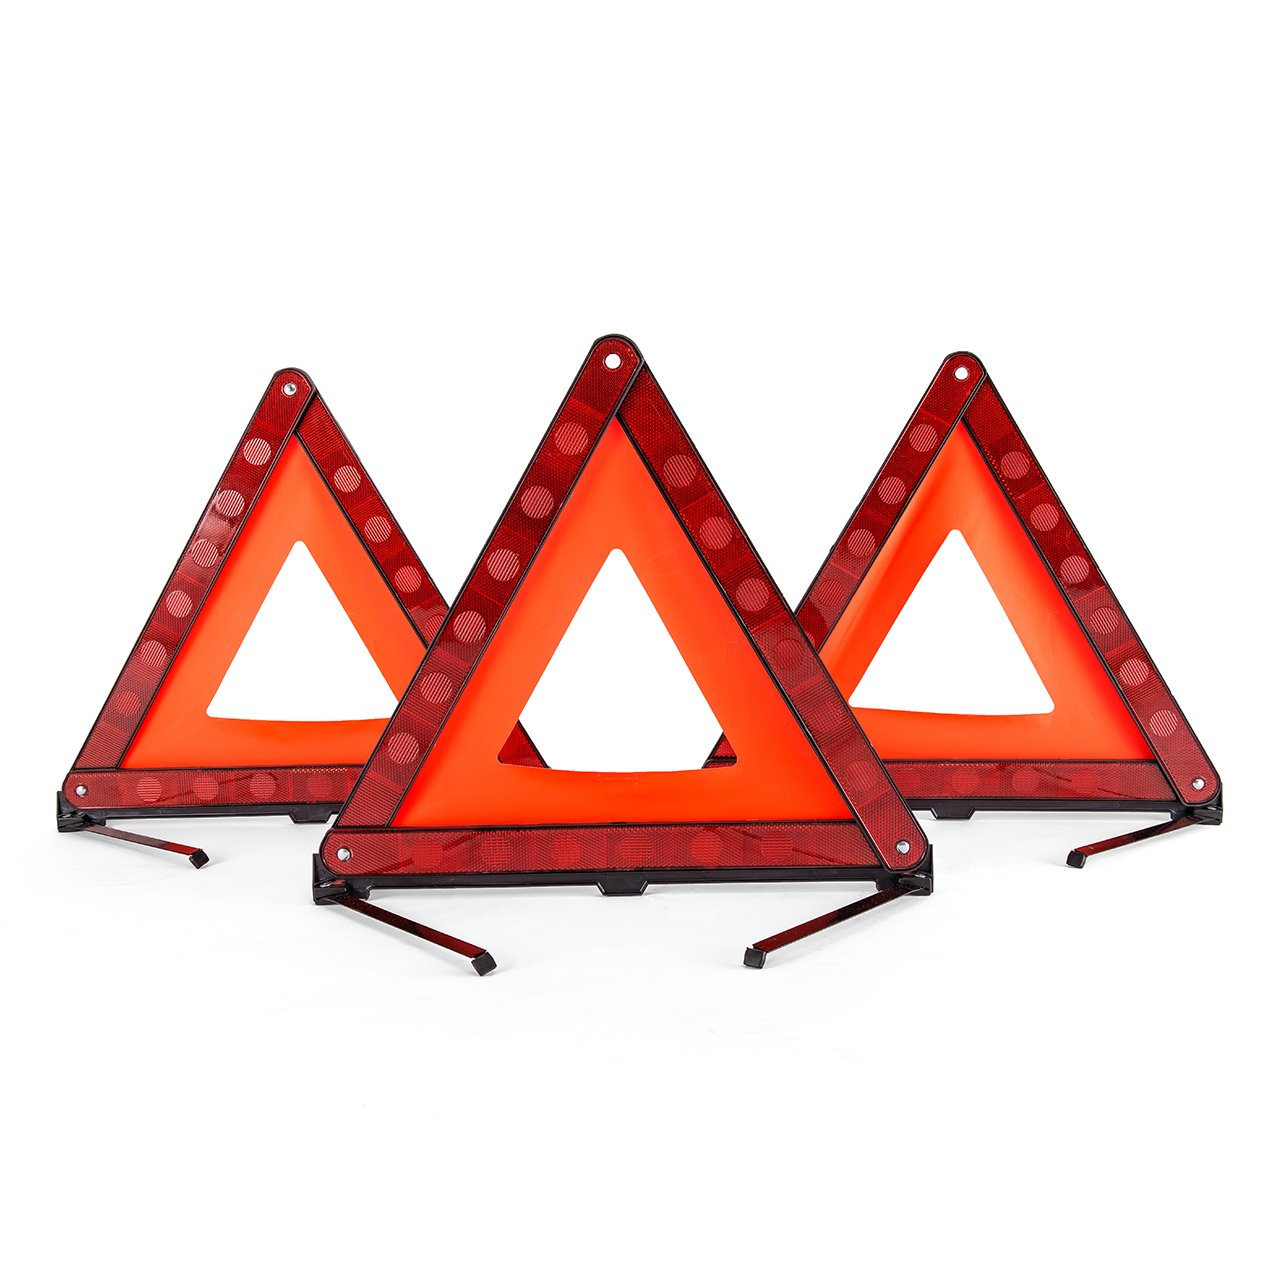 DEDC 3 Pack Warning Triangle Foldable Safety Triangle Triple Warning Kit Warning Triangle Reflector Roadside Hazard Sign Triangle Symbol for Emergency with Storage Bag by DEDC